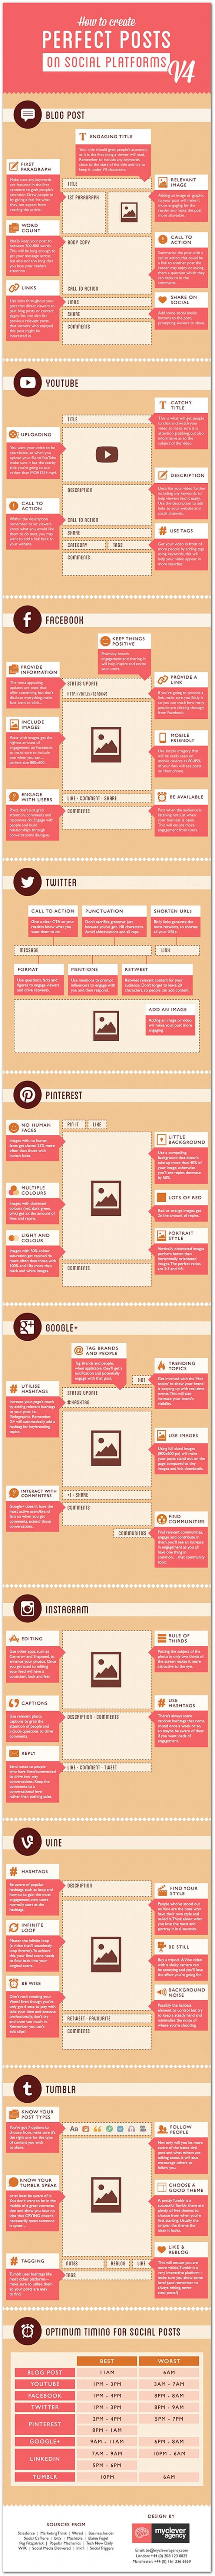 Share on facebook tweet this post pin images to pinterest - A Guide To Perfect Social Media Posts Infographic